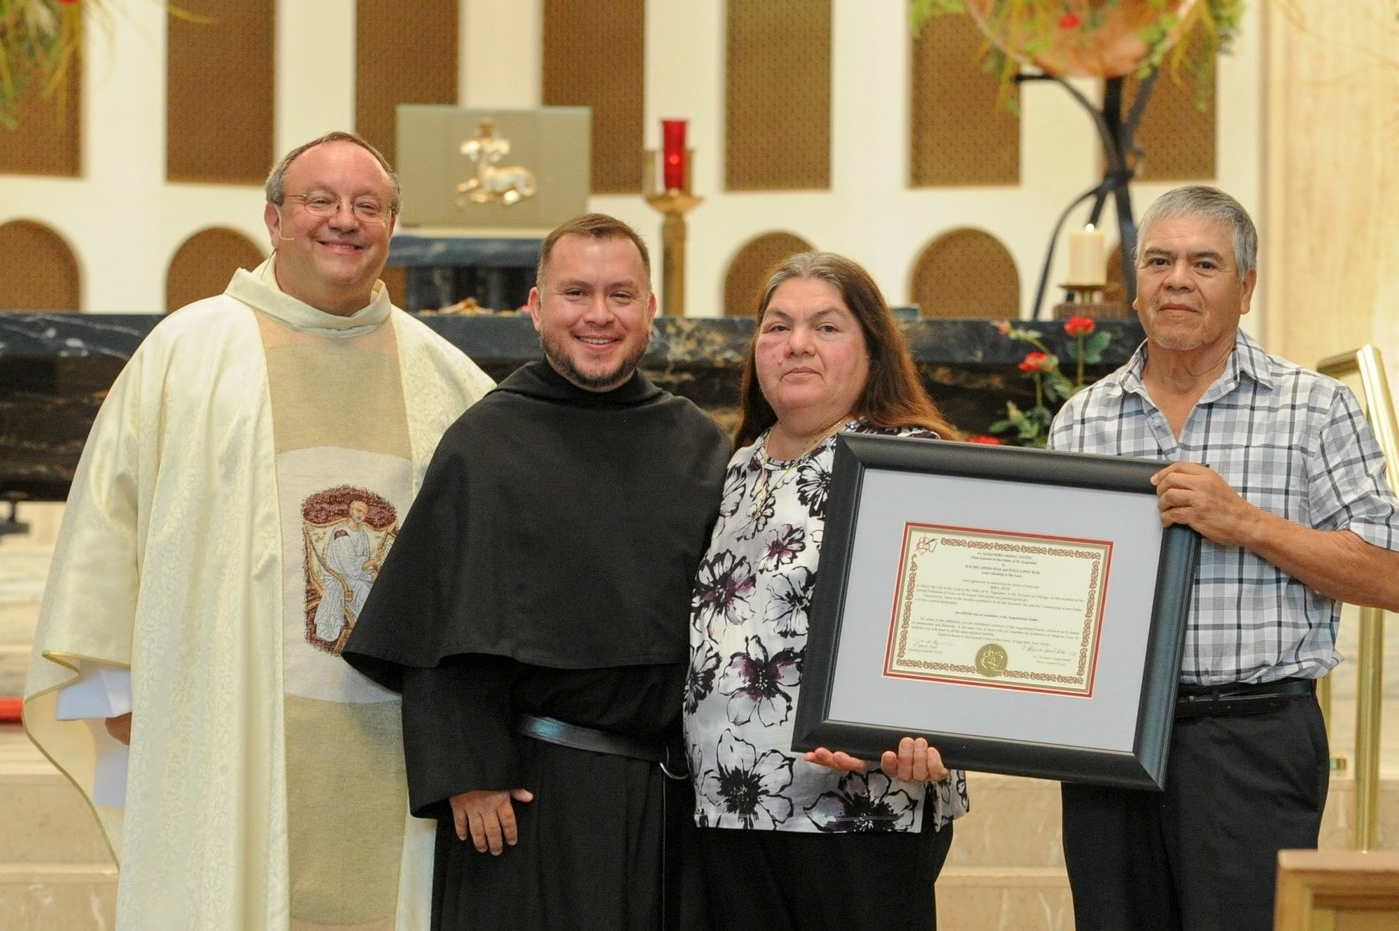 Brother Joe Ruiz, O.S.A., with his Provincial and newly affiliated parents